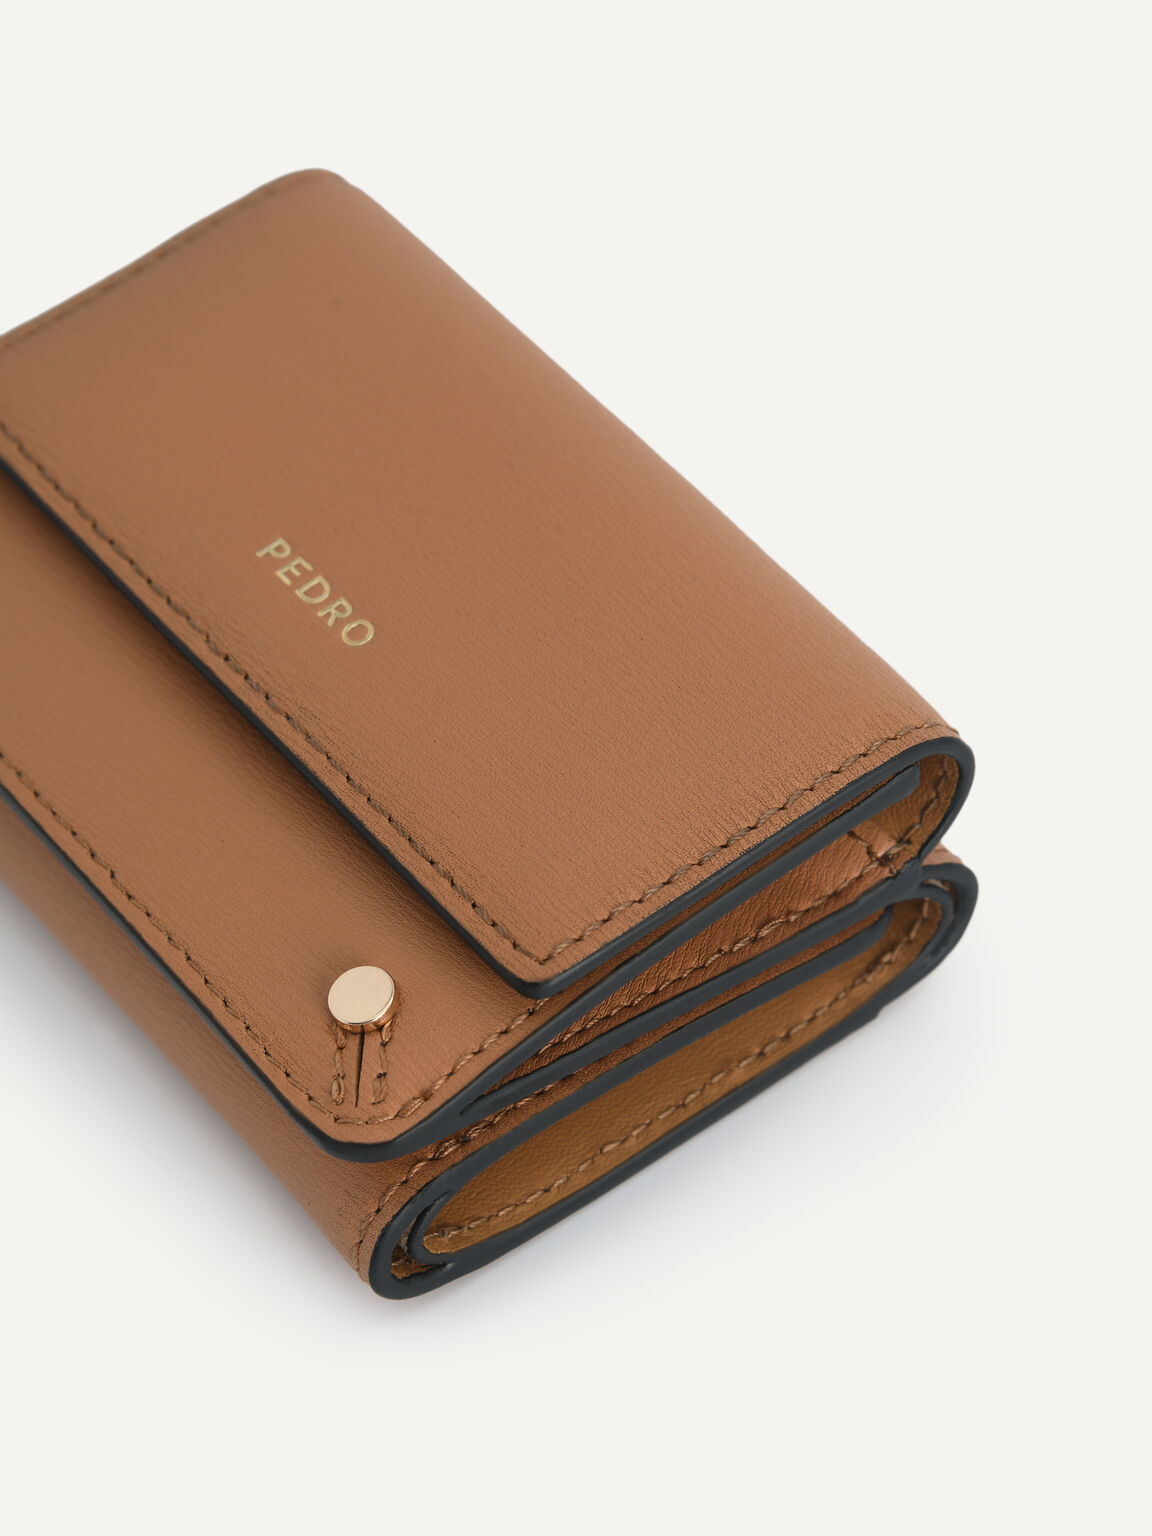 Textured Leather Trifold Wallet, Camel, hi-res